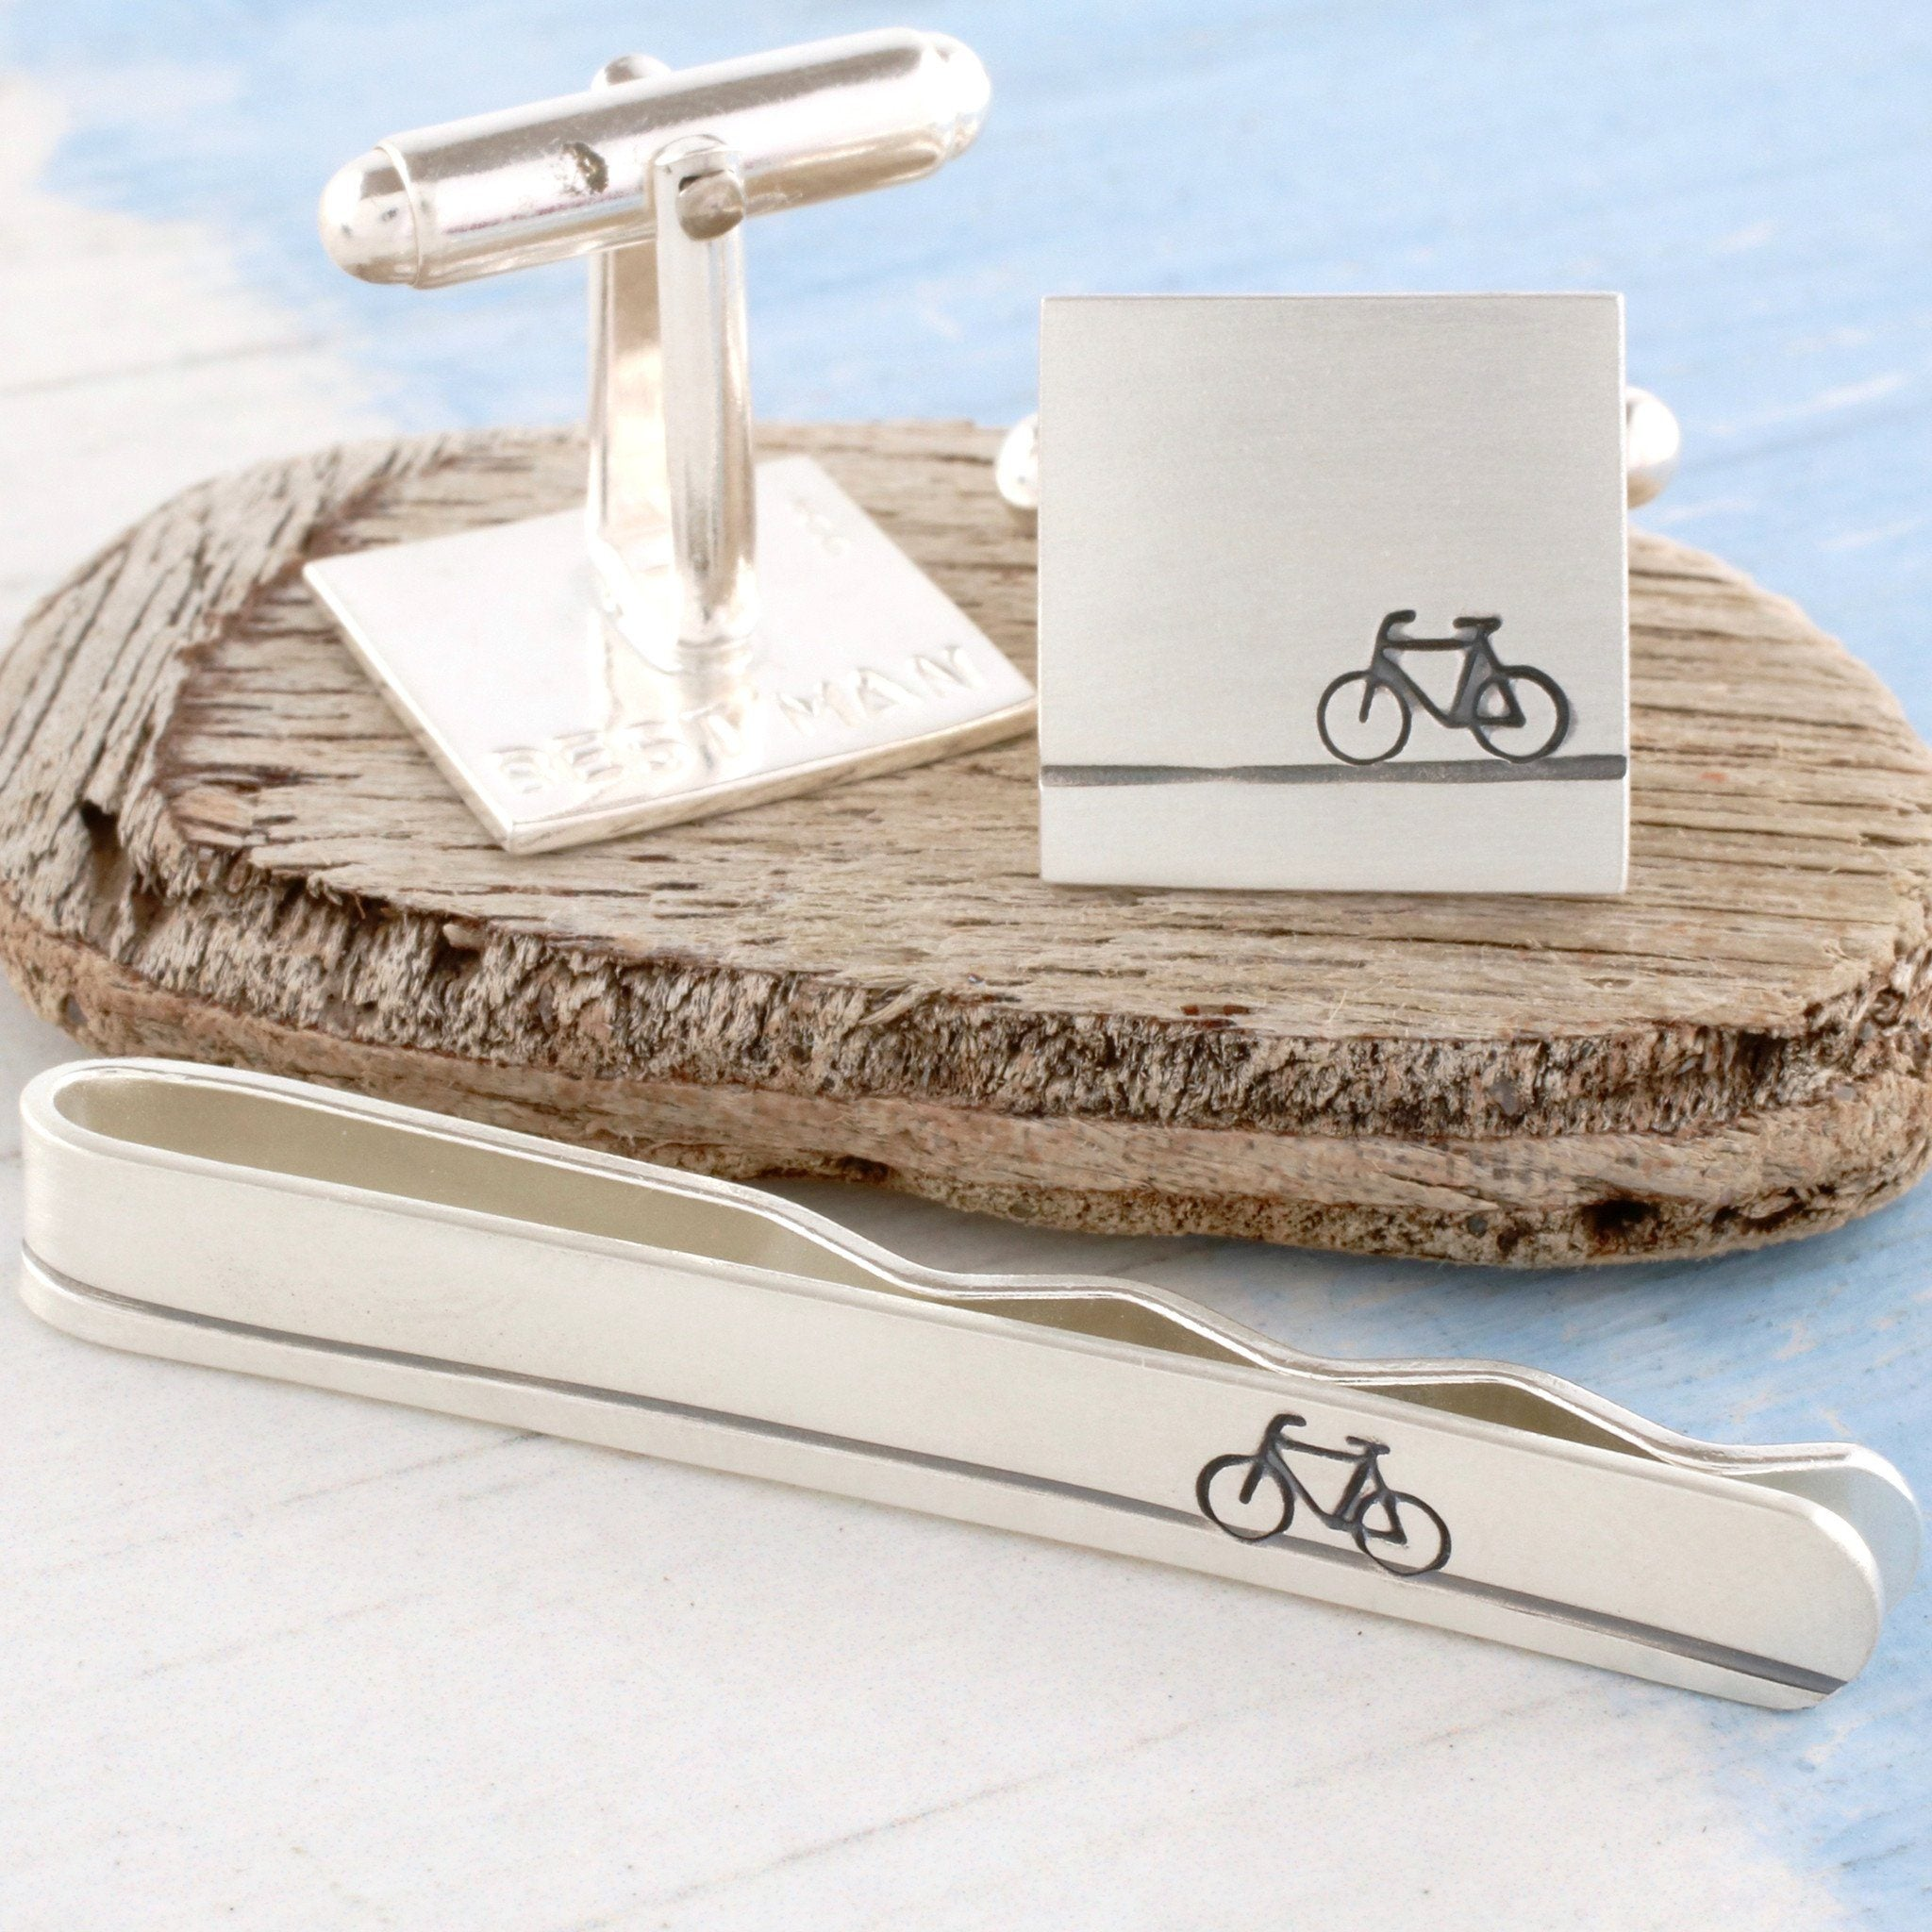 Sterling silver bike cufflinks and tie clip gift set